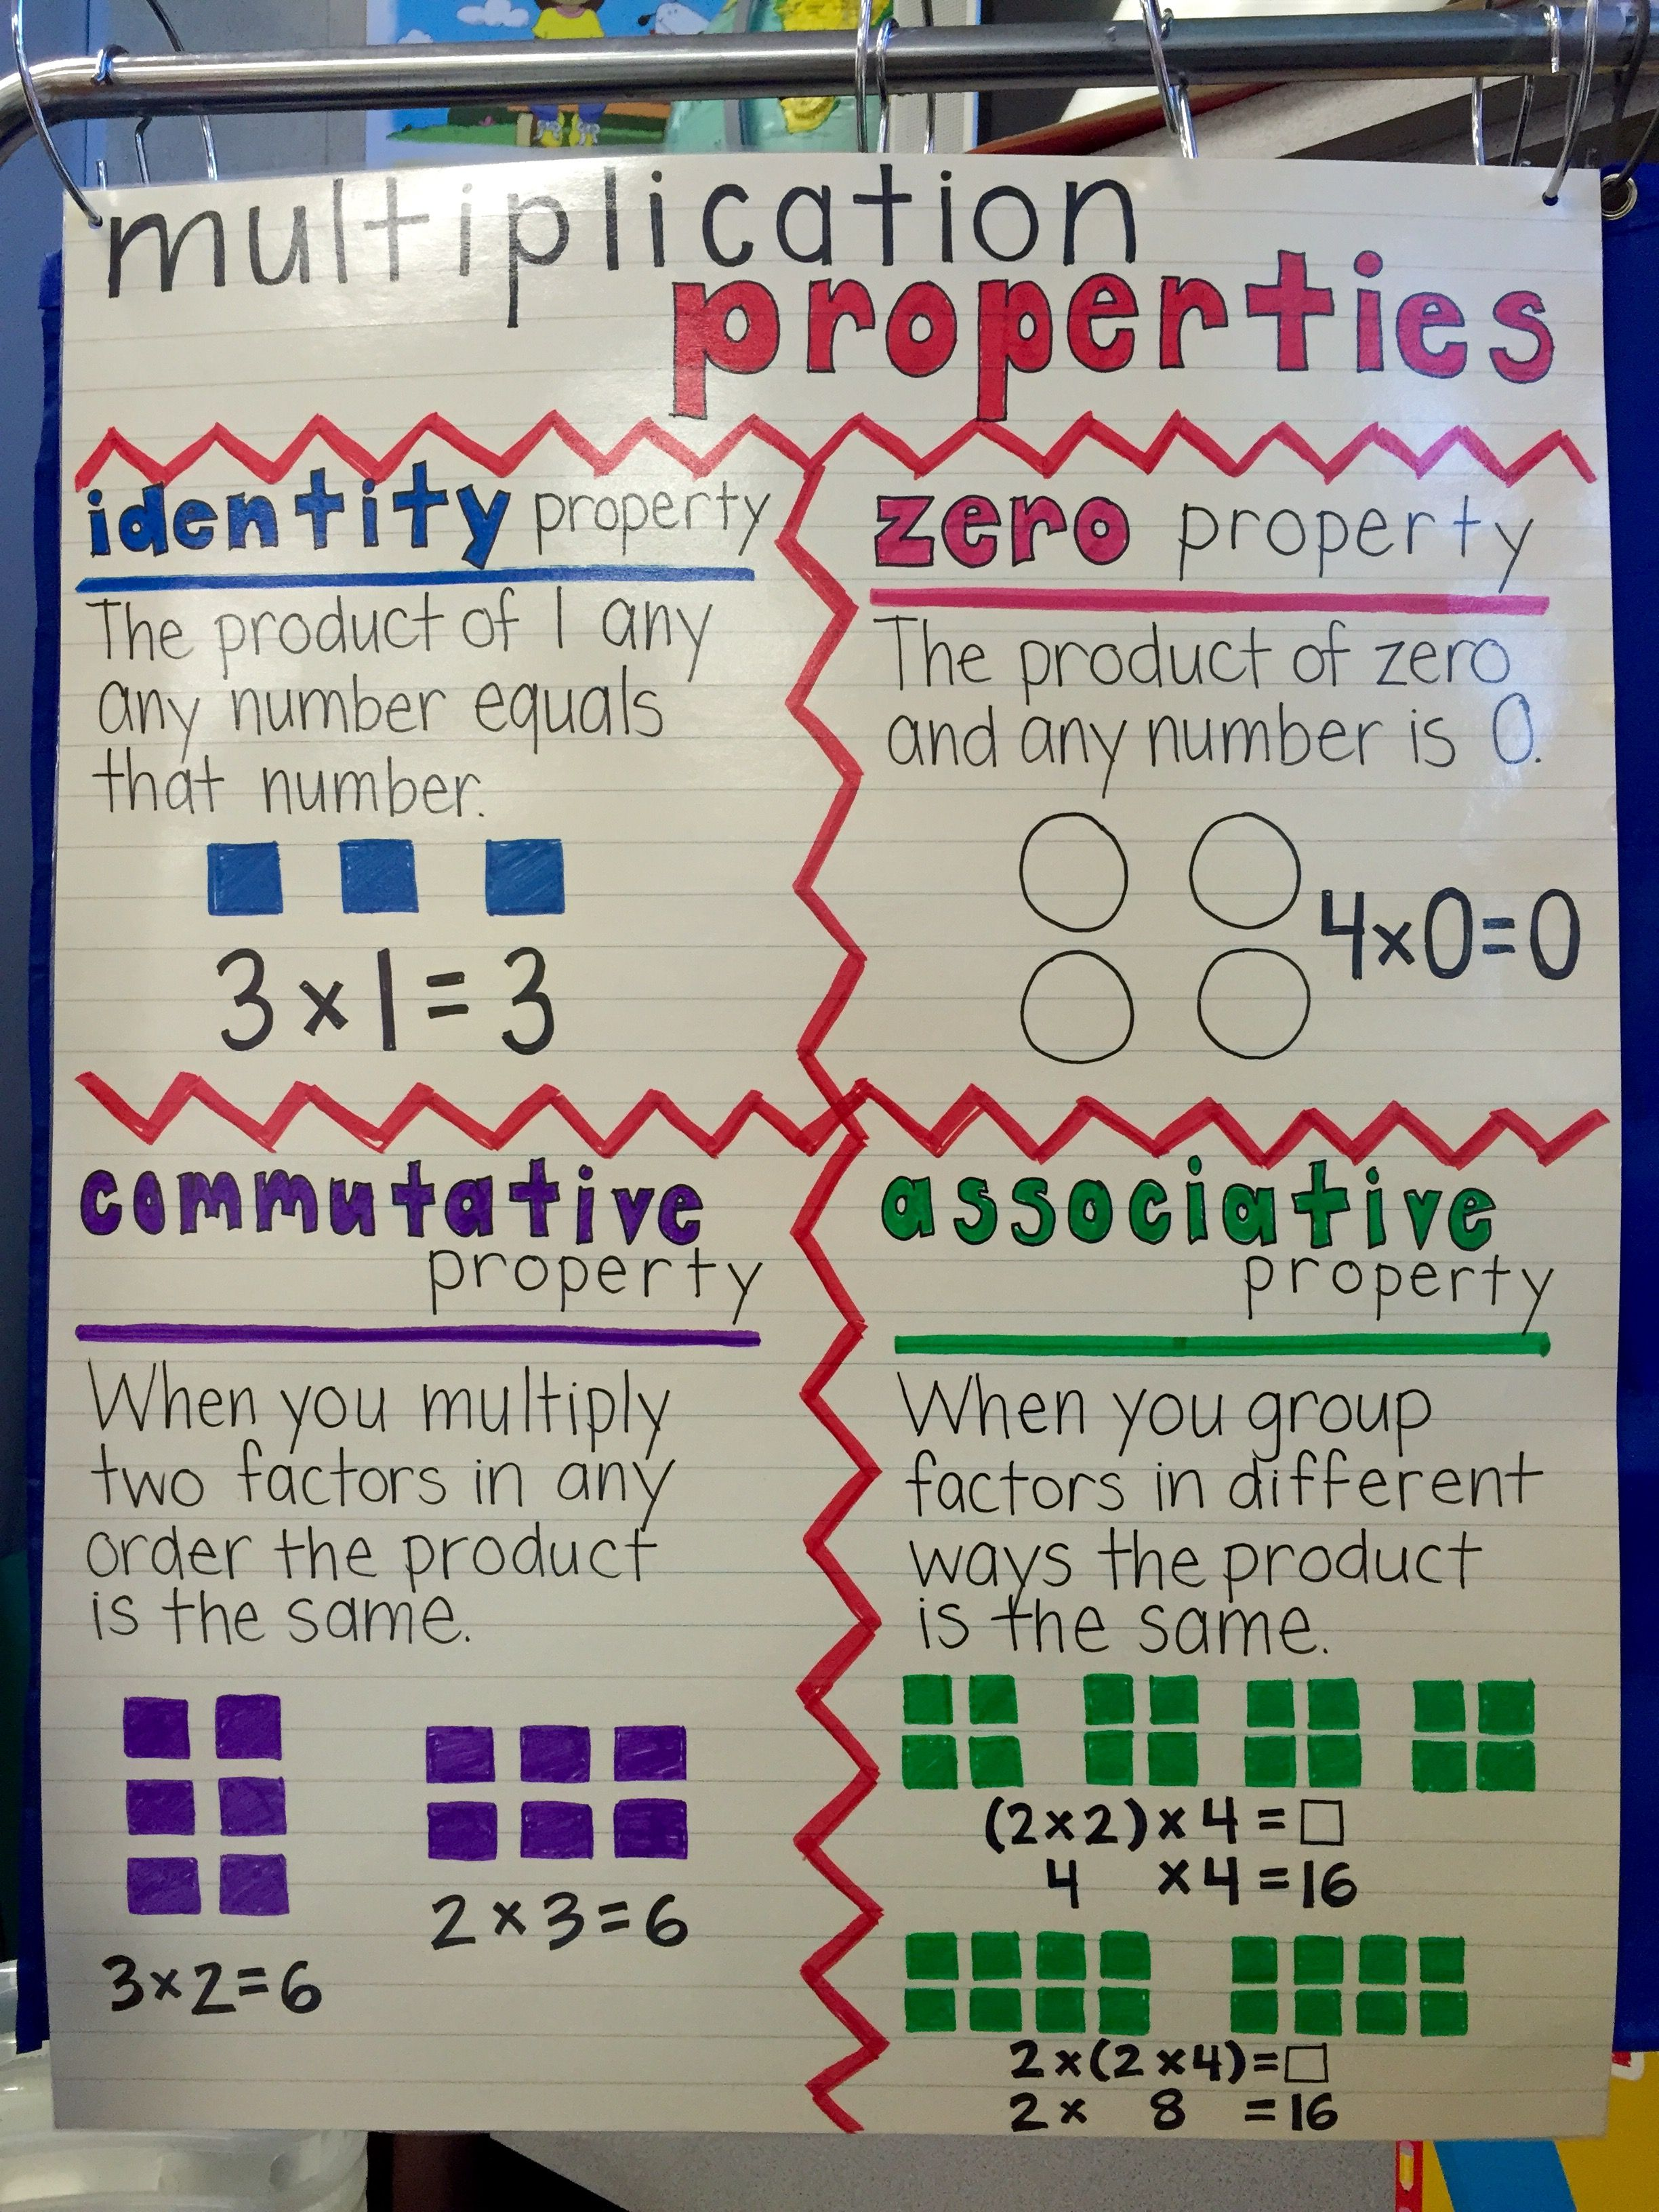 Multiplication Properties Poster 3rd Grade